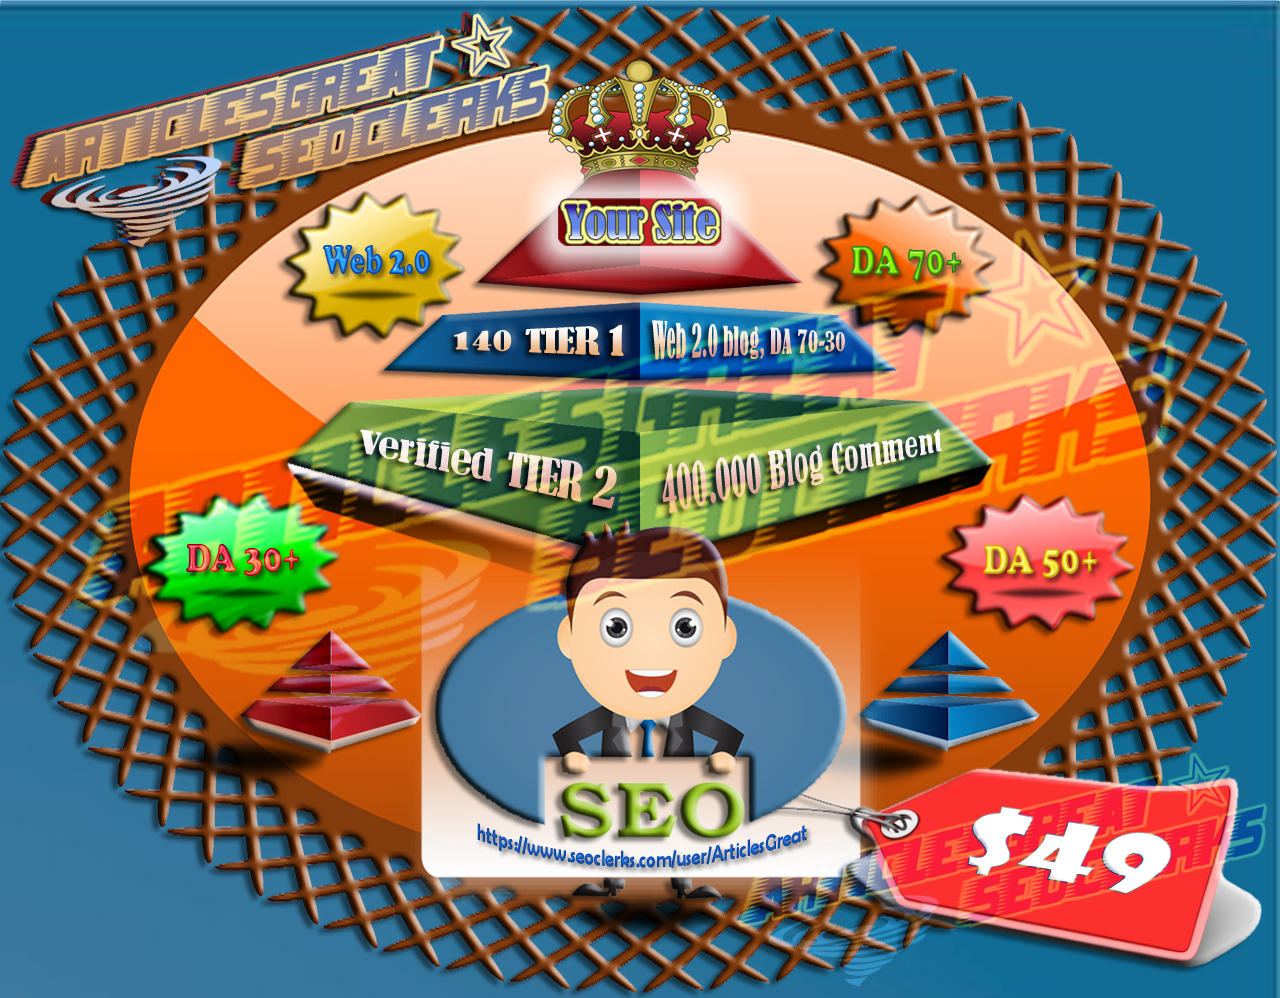 200 Backlink PBN DA 70, PA 30 + Web 2.0 Blog with Login Account